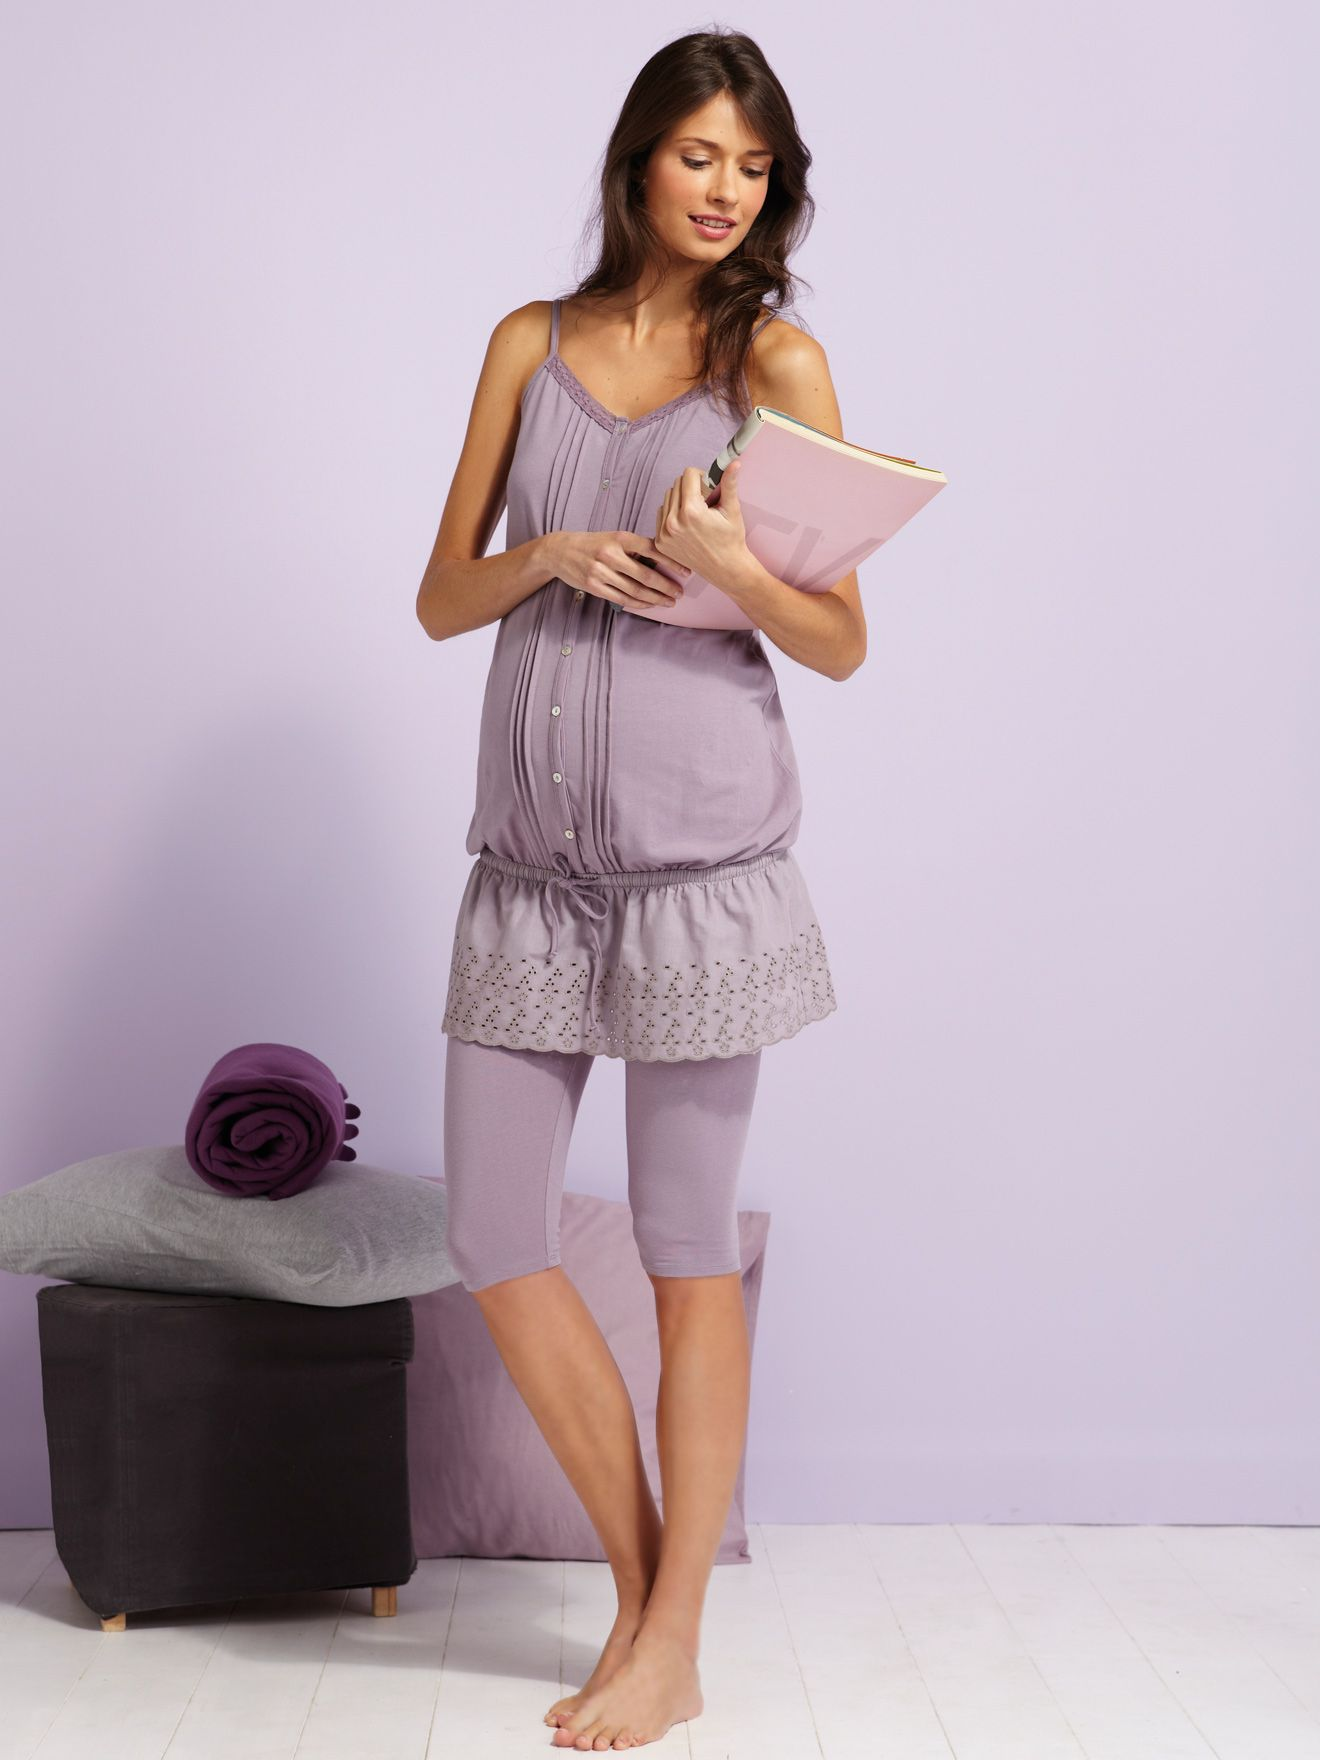 Cute dresses for maternity pictures